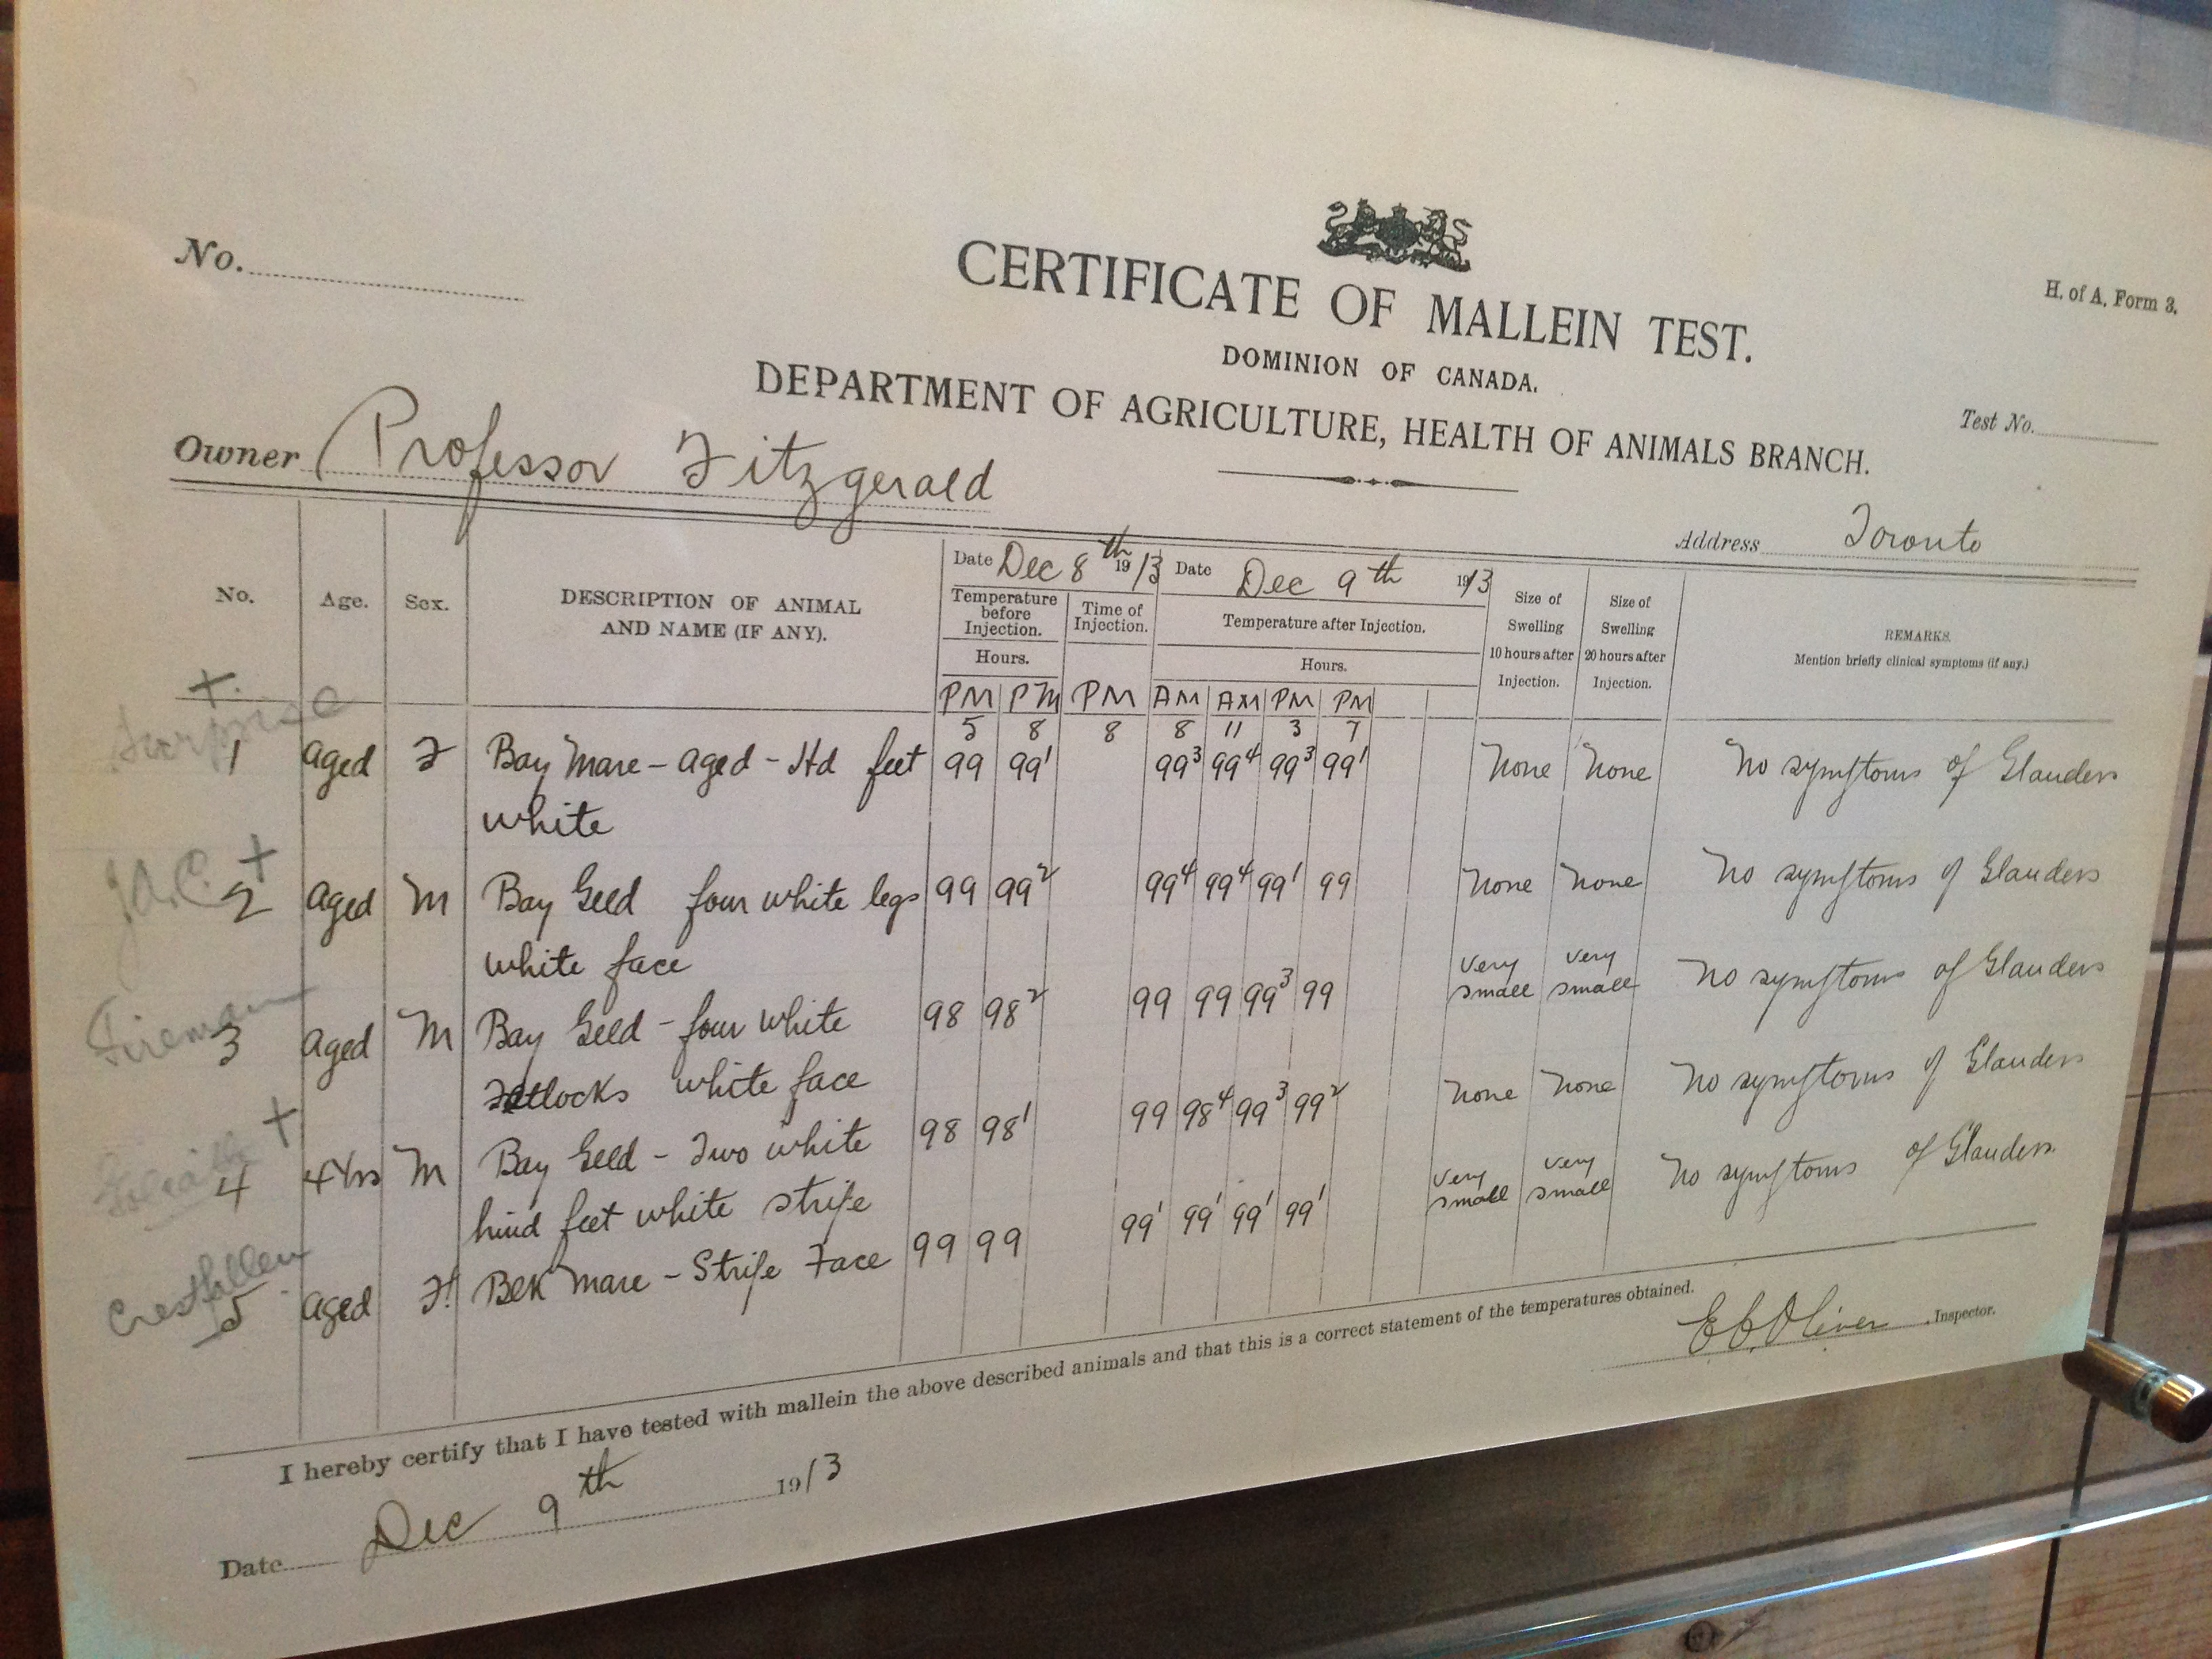 Certificate of Mallein Test of the first horses involved in diphtheria antitoxin production in the Barton Avenue Stable, December 9, 1913.